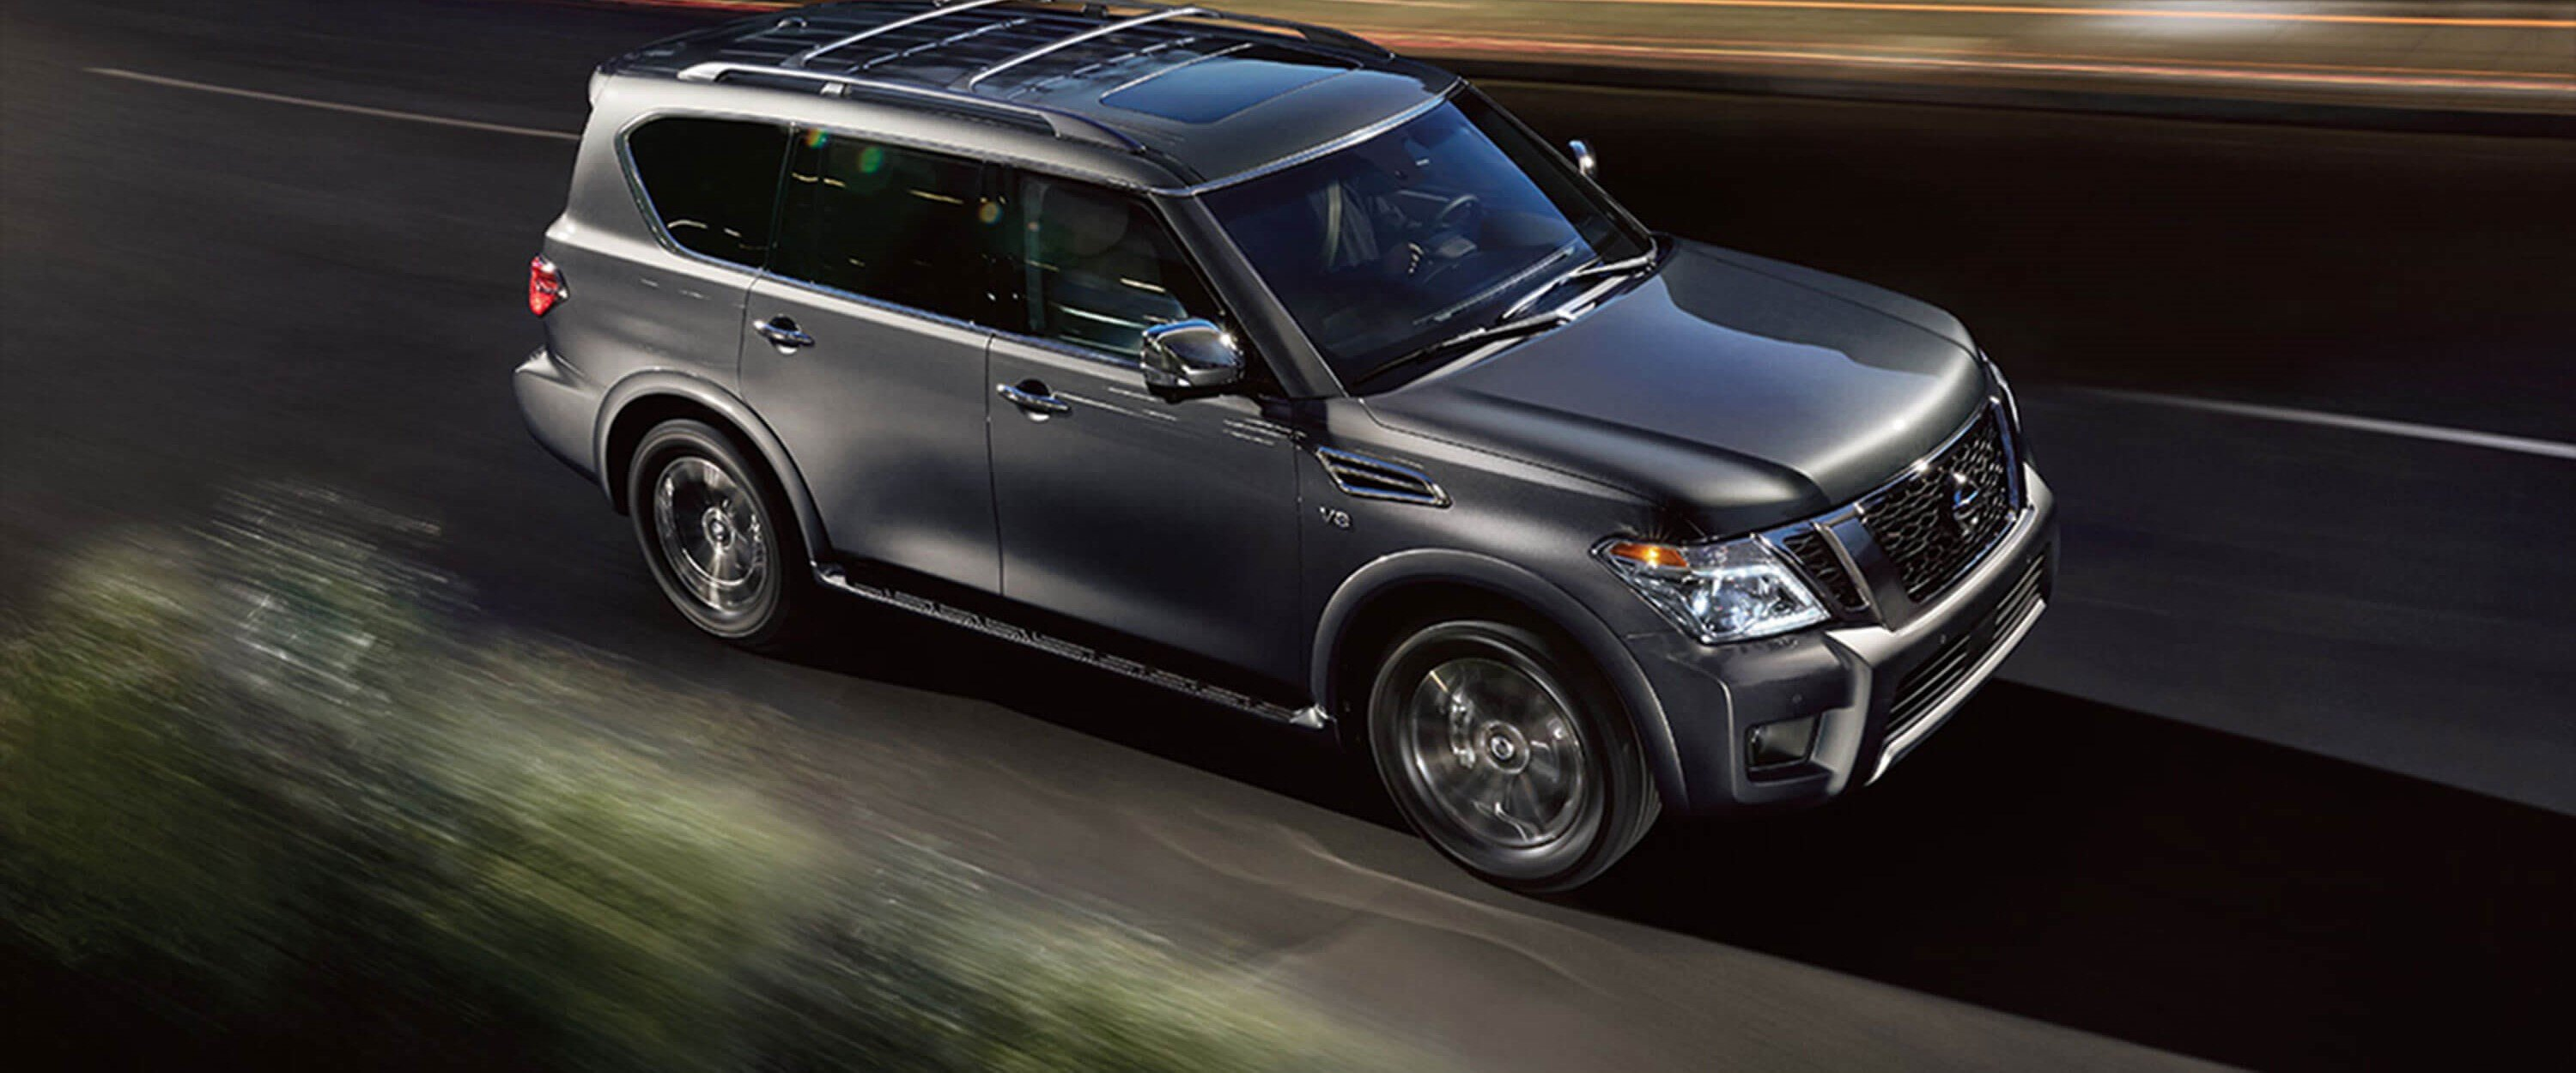 Nissan Armada Towing Capacity >> Nissan Armada Lease Offers Finance Deals Lynnfield Ma